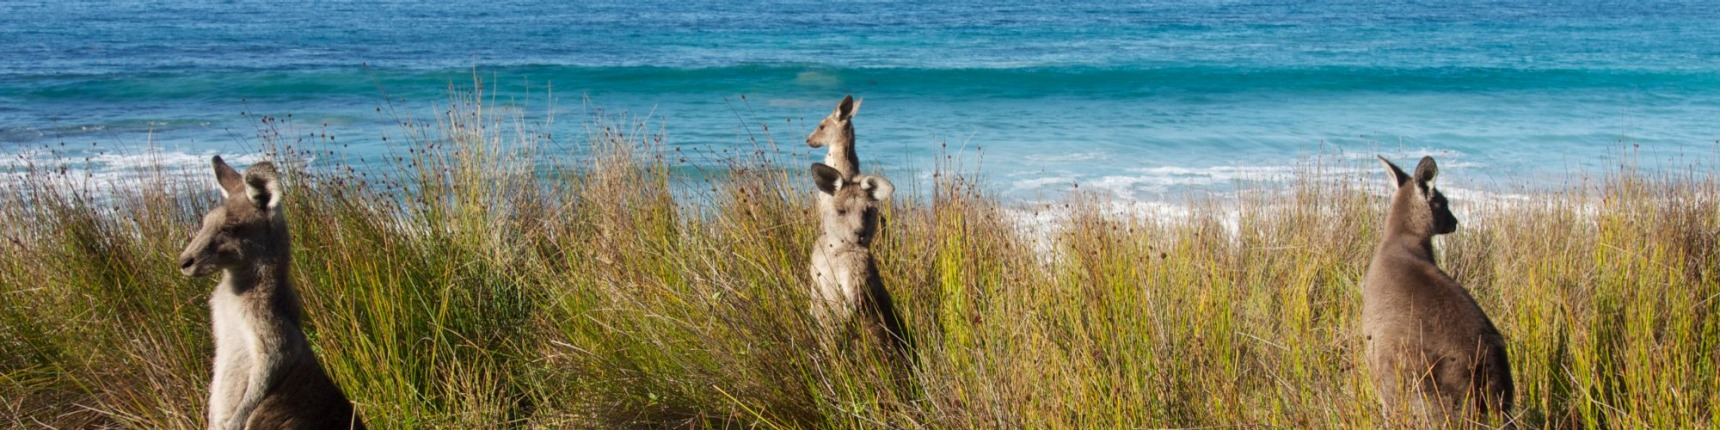 Batemans Bay, coast, kangaroos